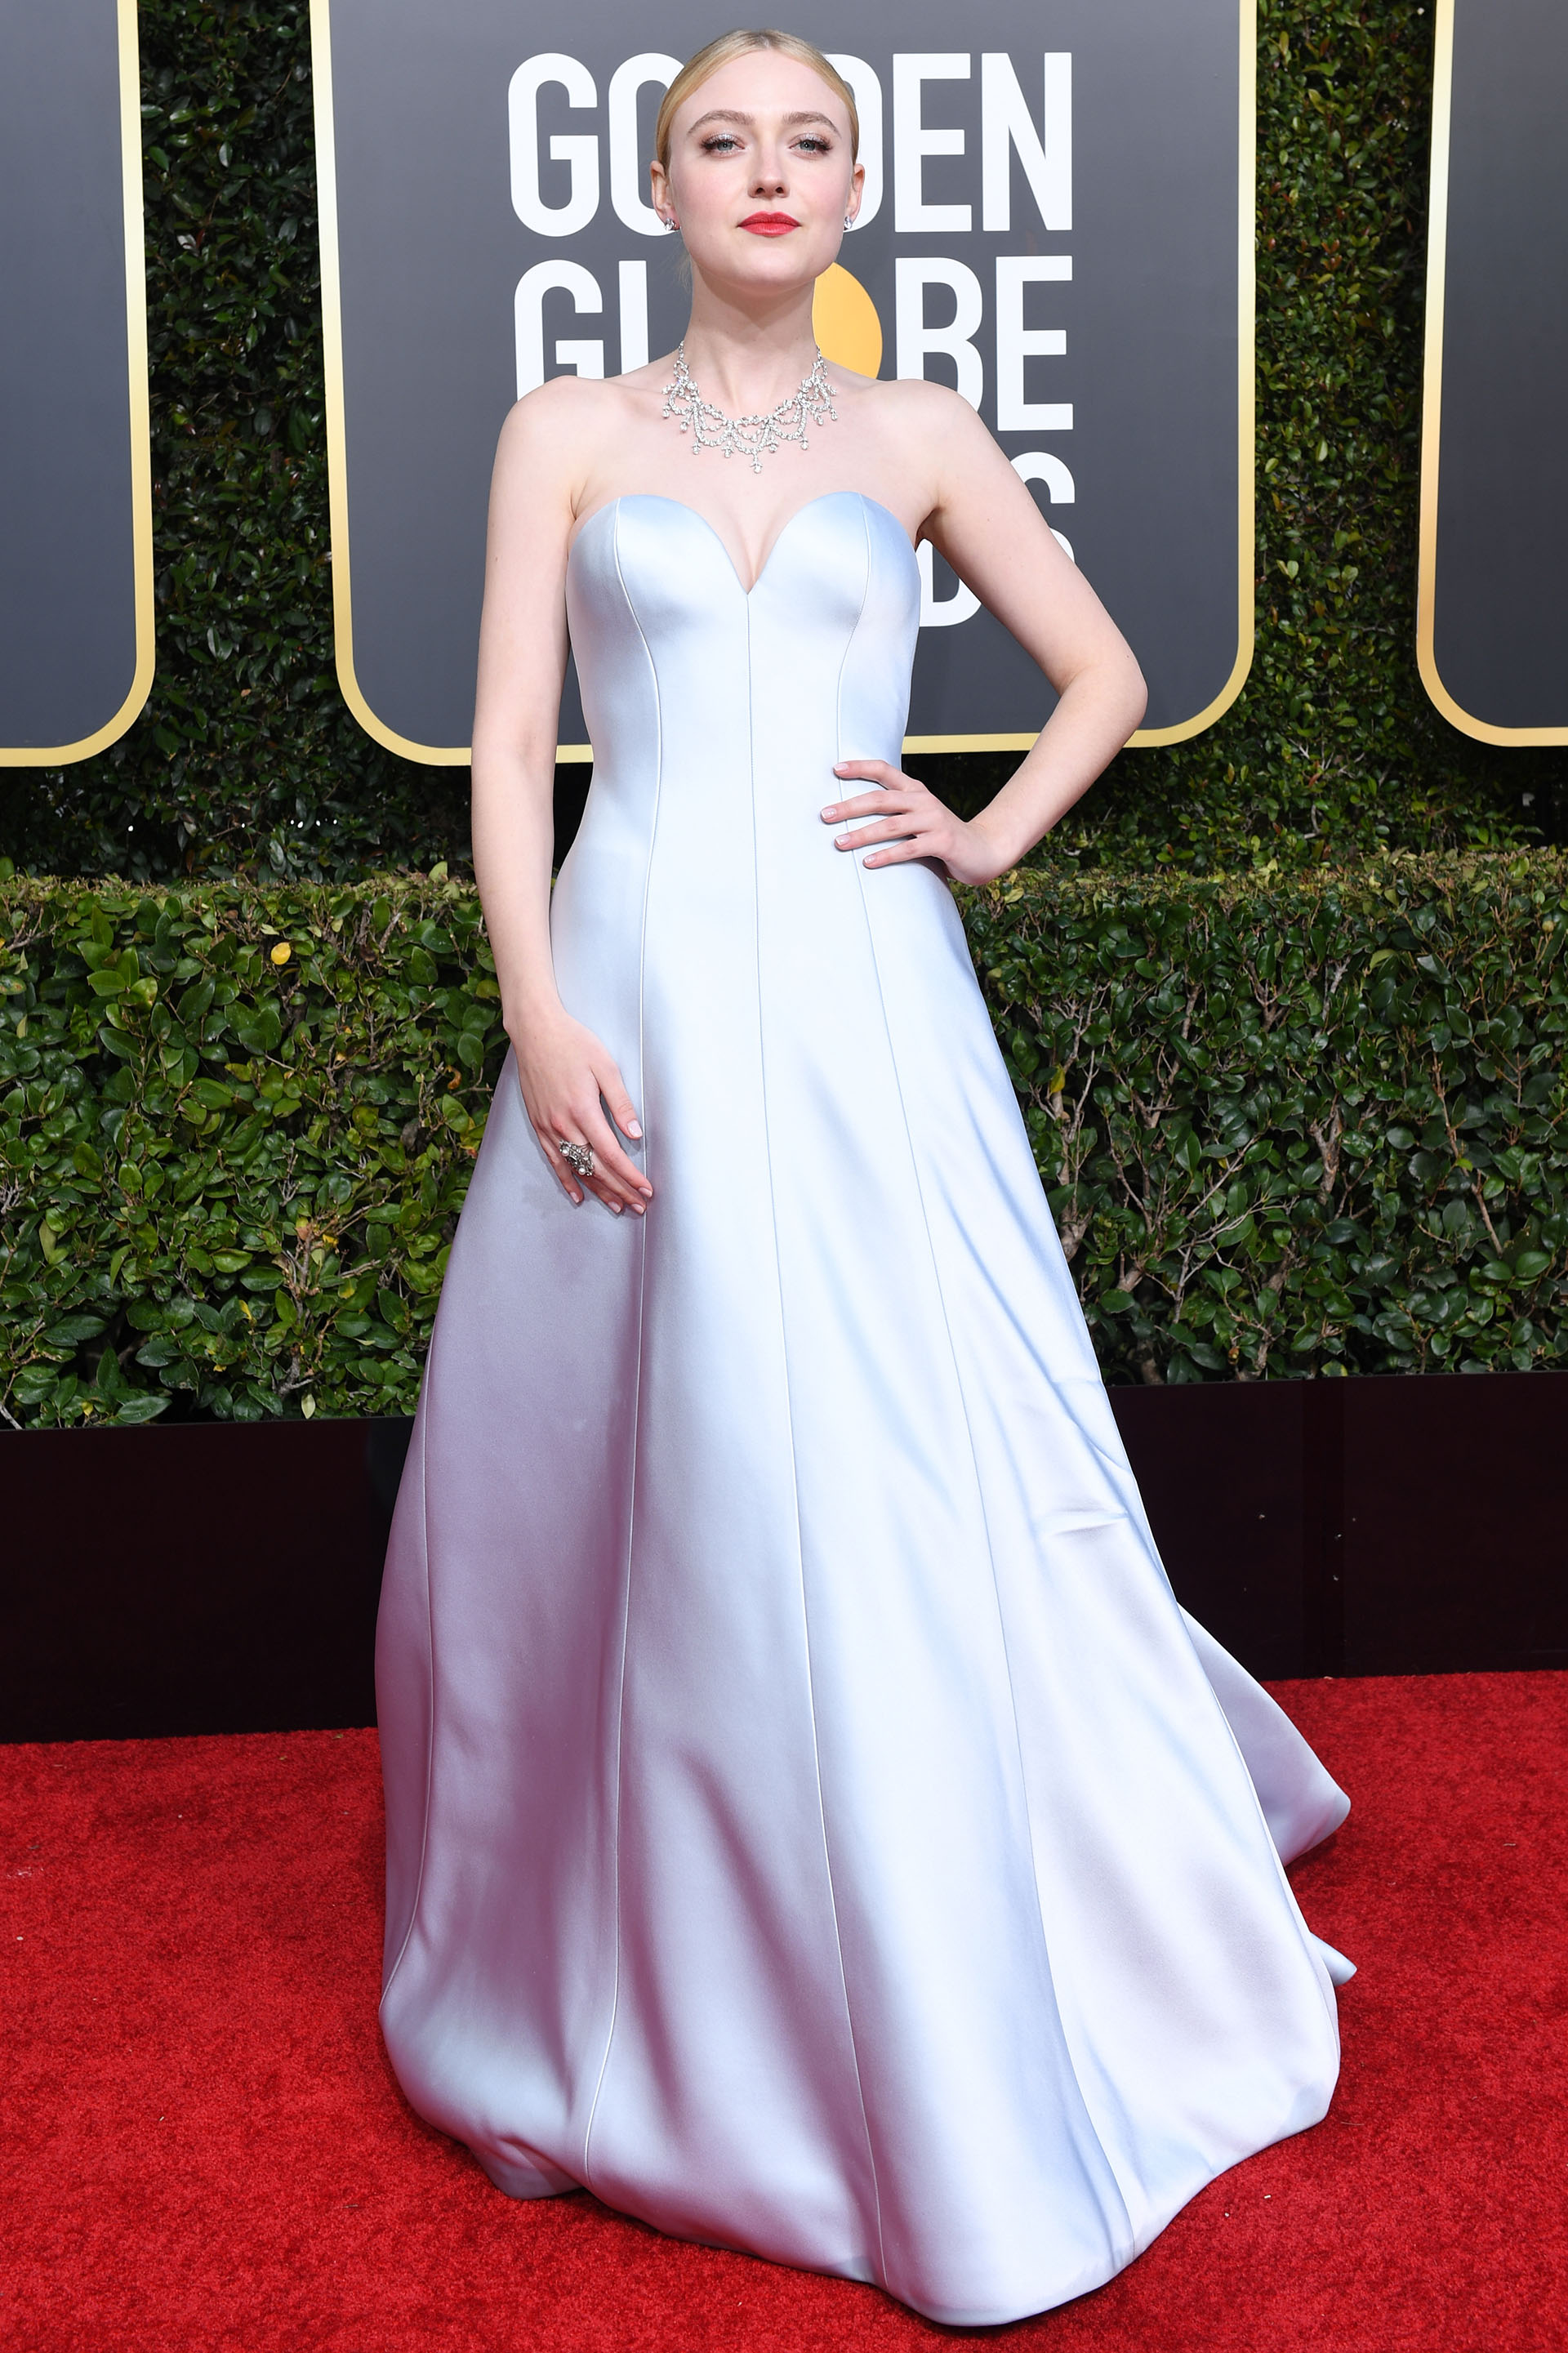 Dakota Fanning impactó con su look en la red carpet de los Golden Globes con su total white look. Escote corazón y delicadas joyas de brillantes. ¿Su beauty look? Cabello tirante y labios colorados